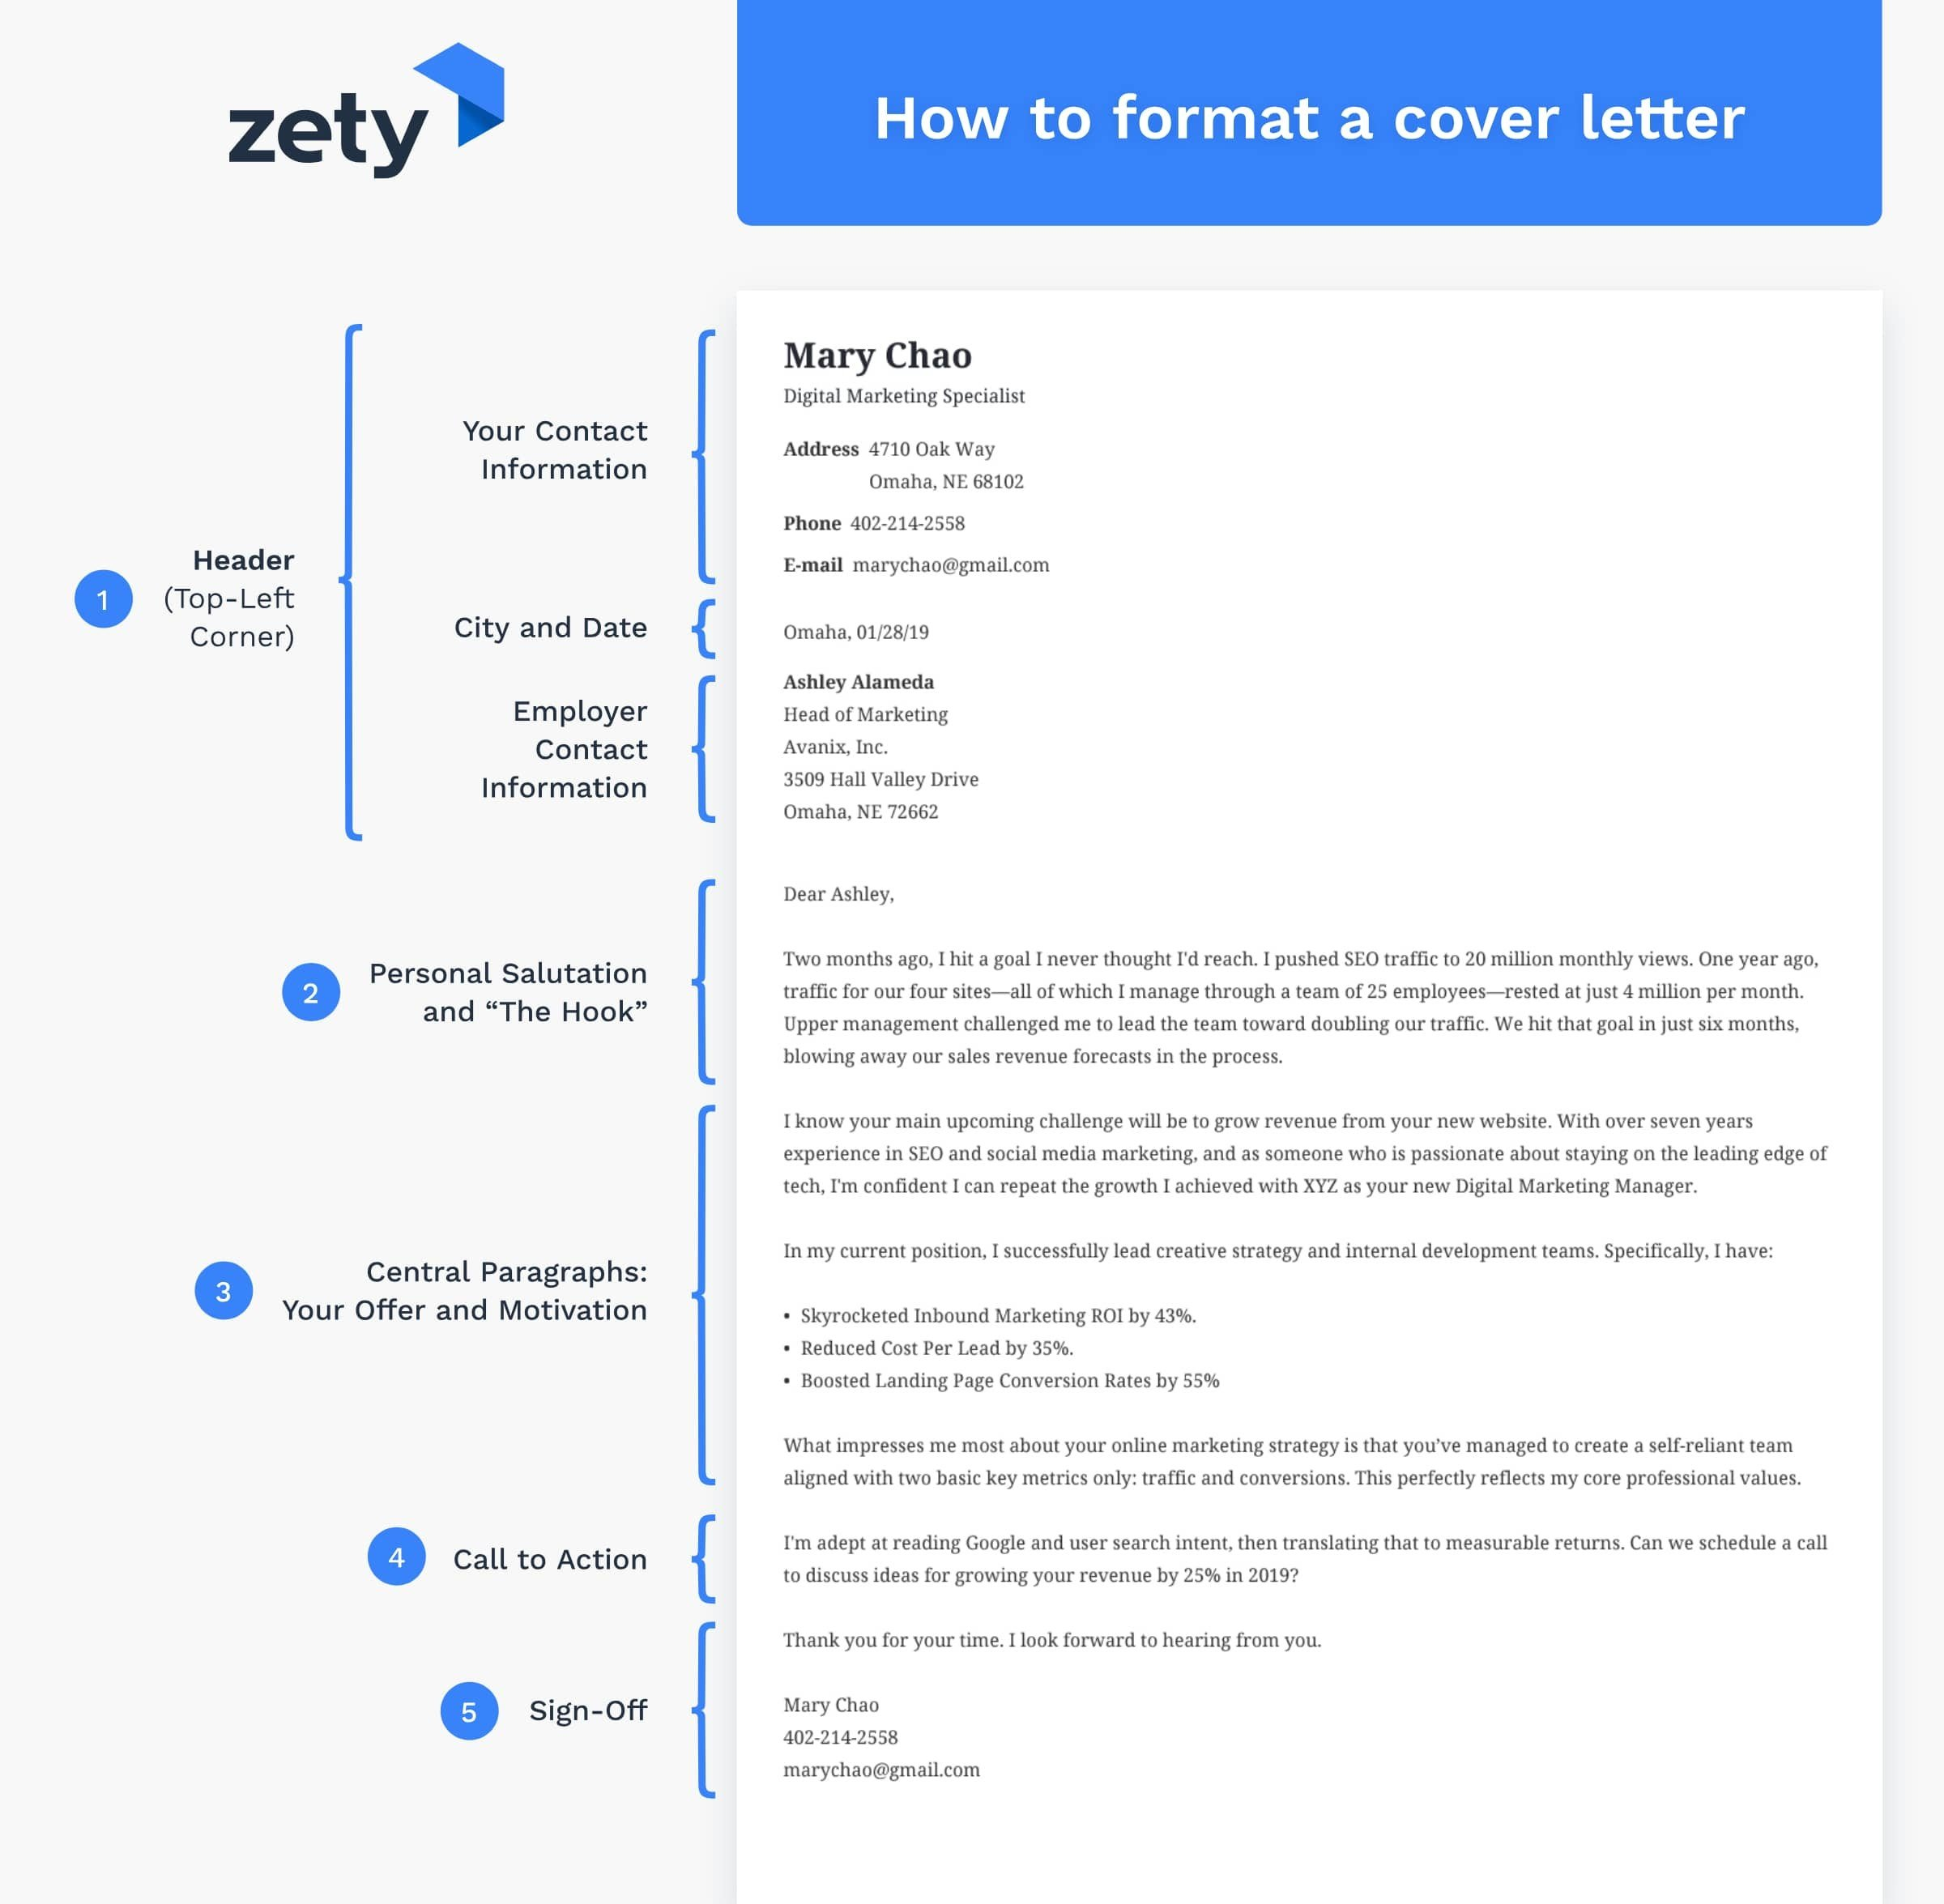 Electronic Signature On Cover Letter from cdn-images.zety.com